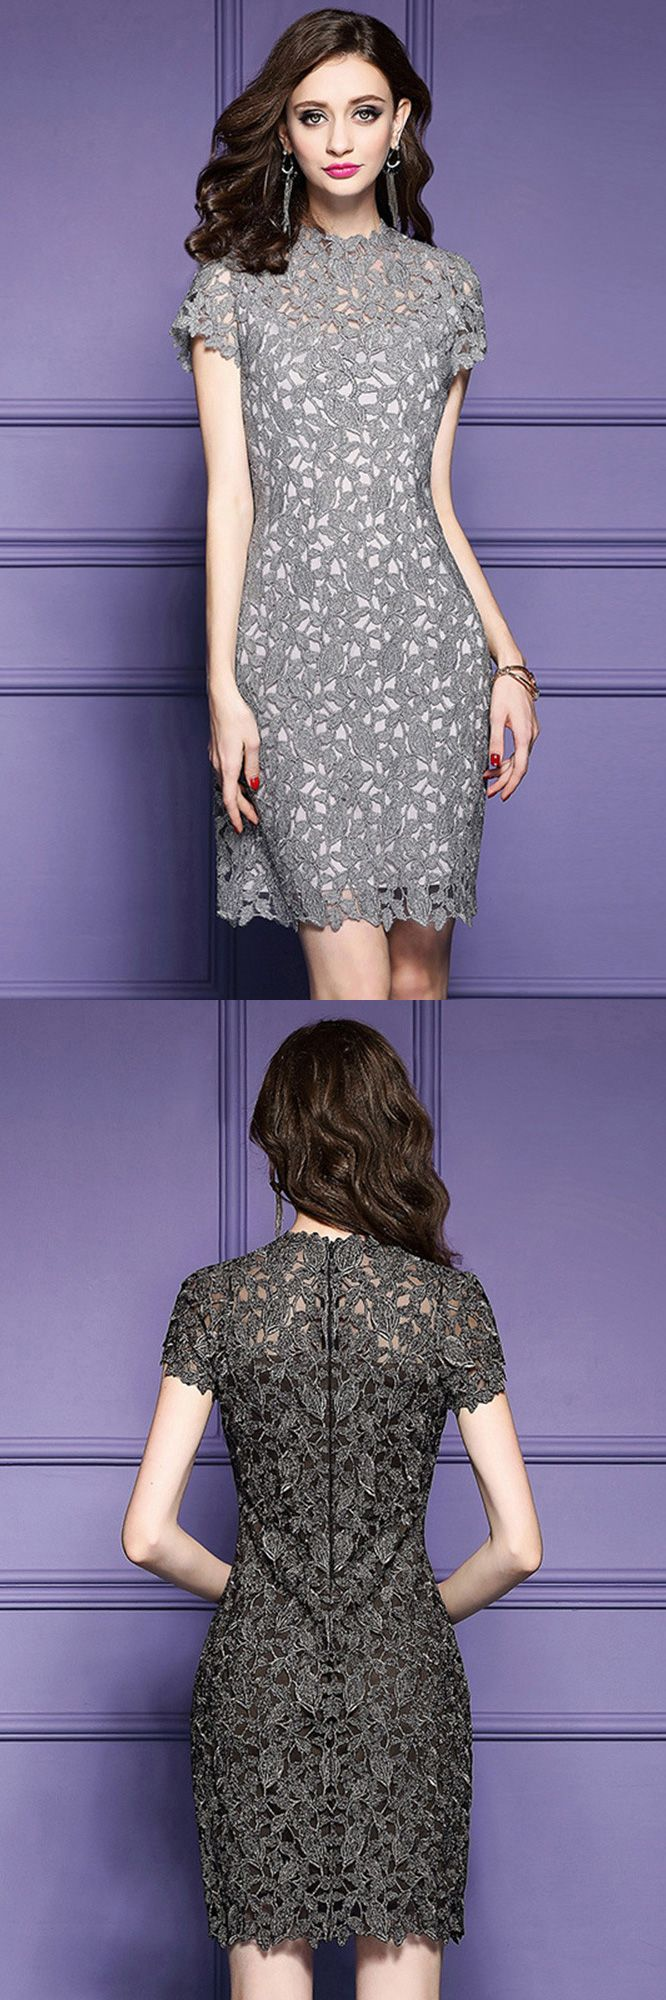 Exlusive Wedding Guest Dresses Luxury Lace Sheath Cocktail